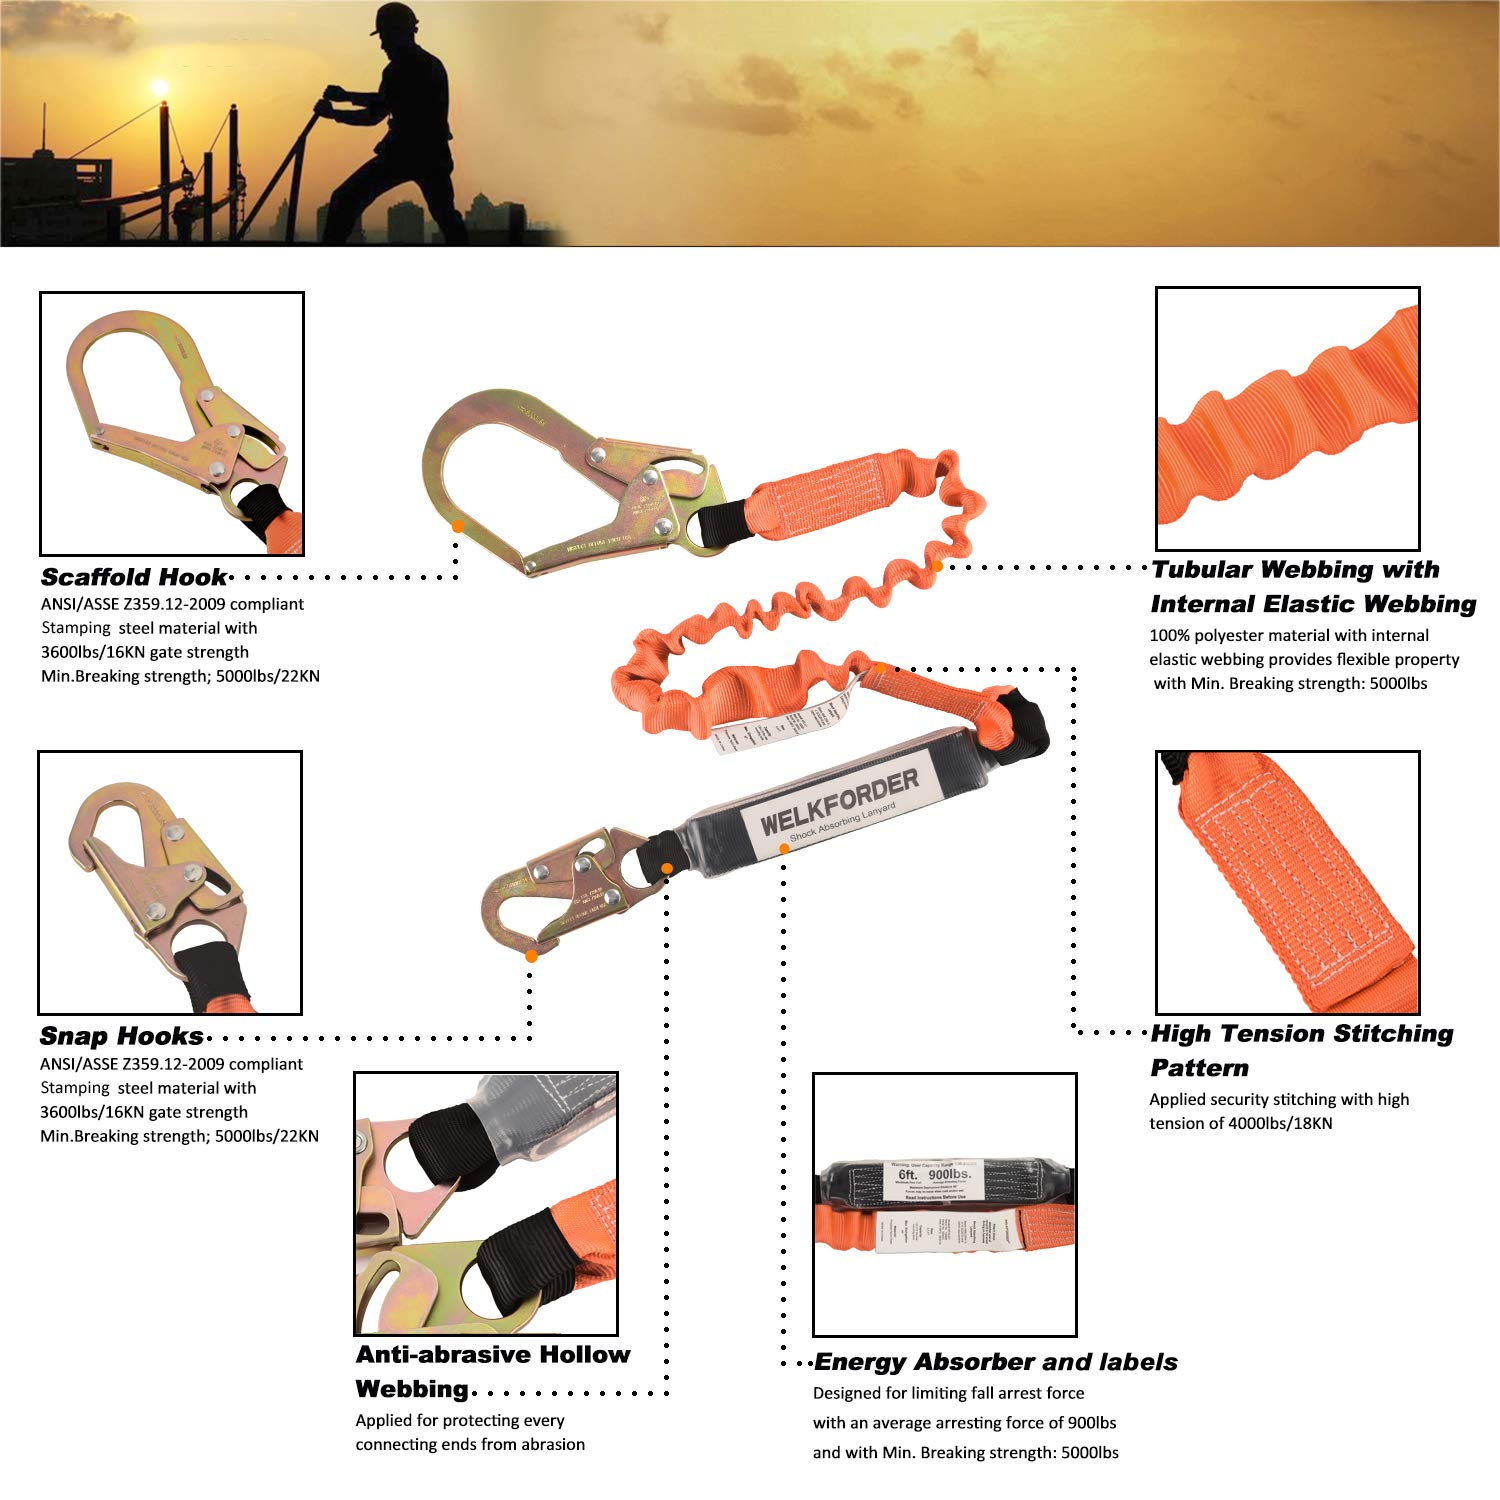 WELKFORDER Single Leg 6-Foot Fall Protection for Construction Shock Absorber Stretch Safety Lanyard with Snap & Rebar Hook Connectors ANSI Z359.13-2013 Complaint by WELKFORDER (Image #5)